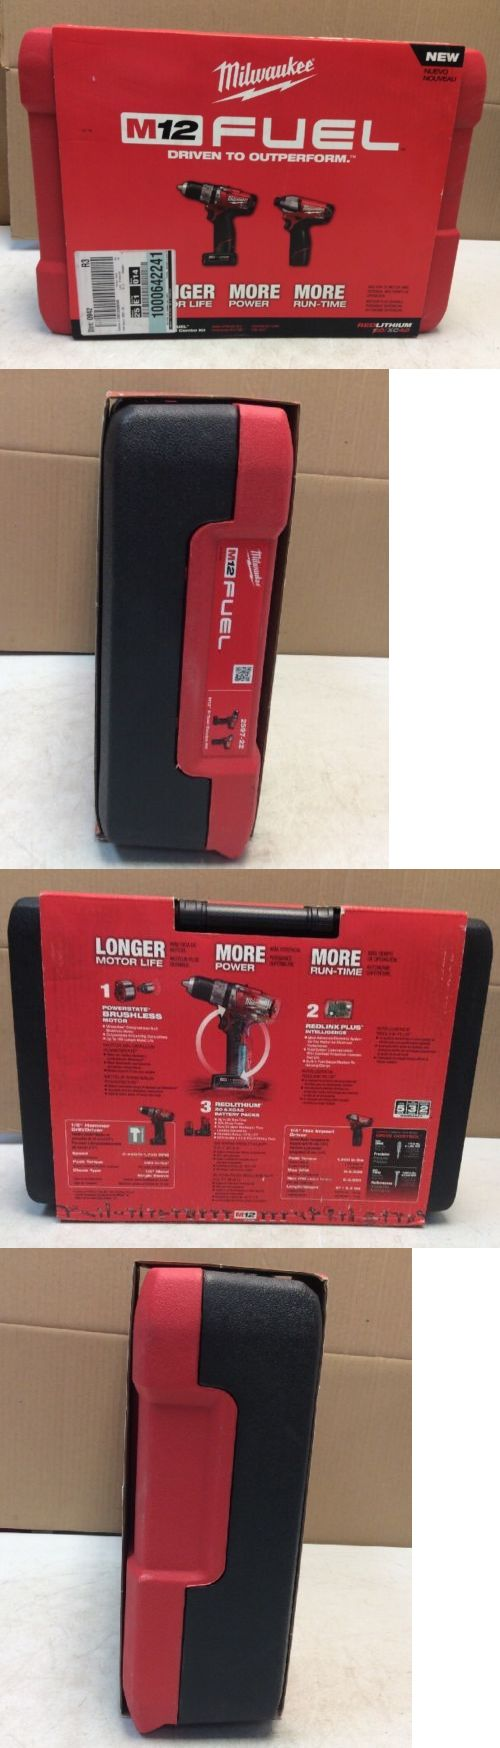 Combination Sets 177000: New Milwaukee 2597-22 M12 Fuel 2-Tool Combo Kit -> BUY IT NOW ONLY: $164.99 on eBay!